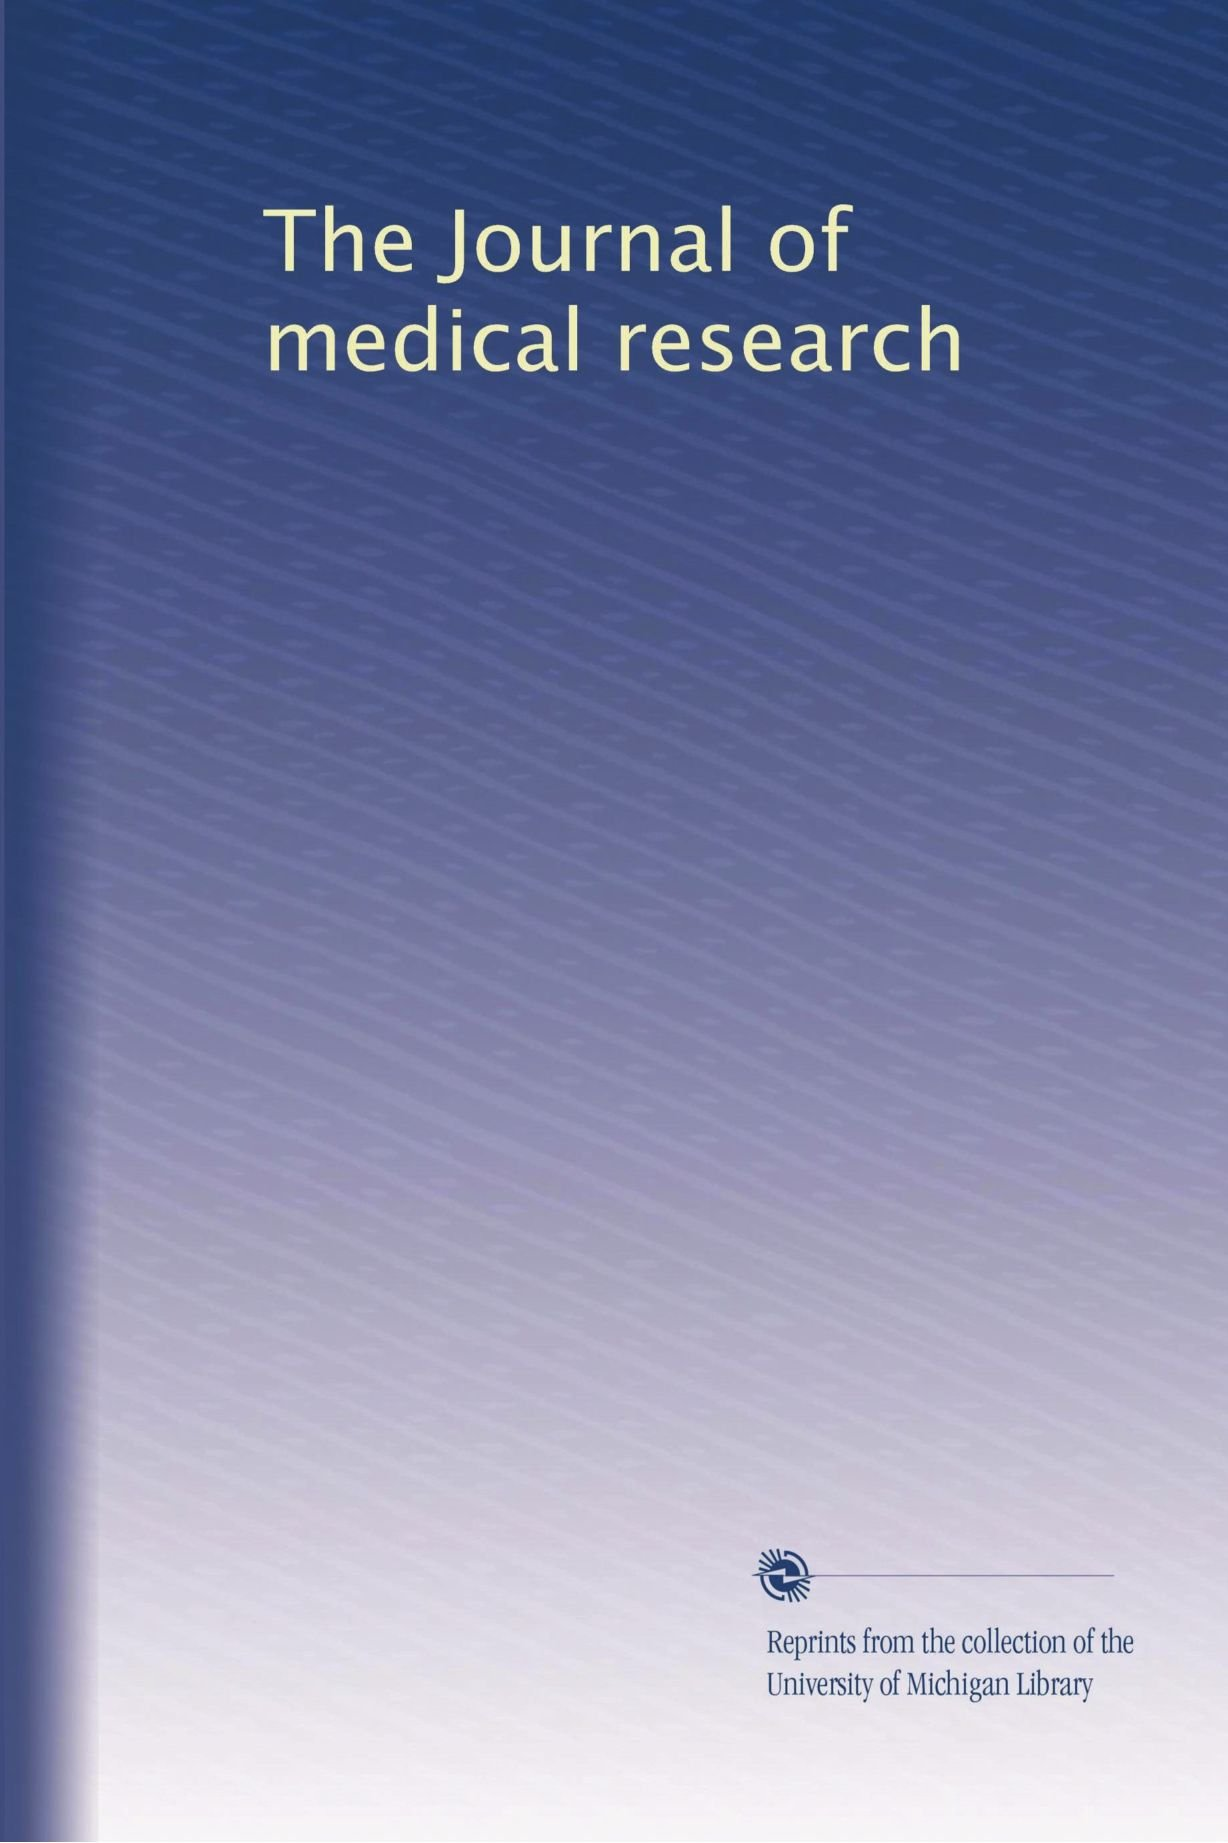 Download The Journal of medical research (Volume 37) ebook